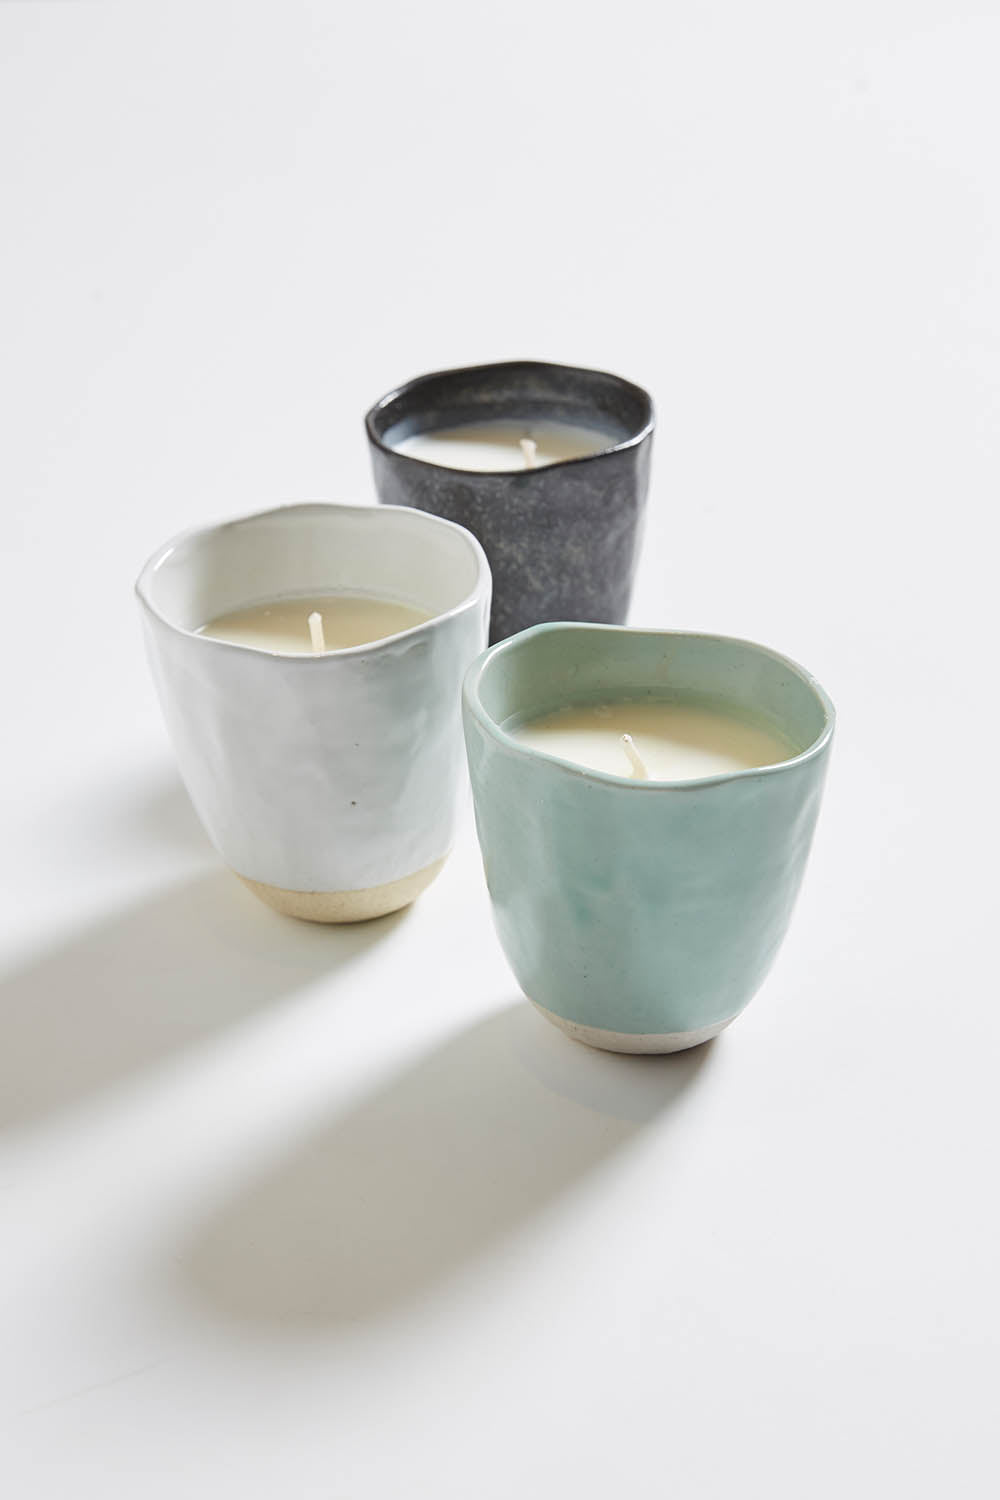 Japanese Stoneware Candle - Charcoal